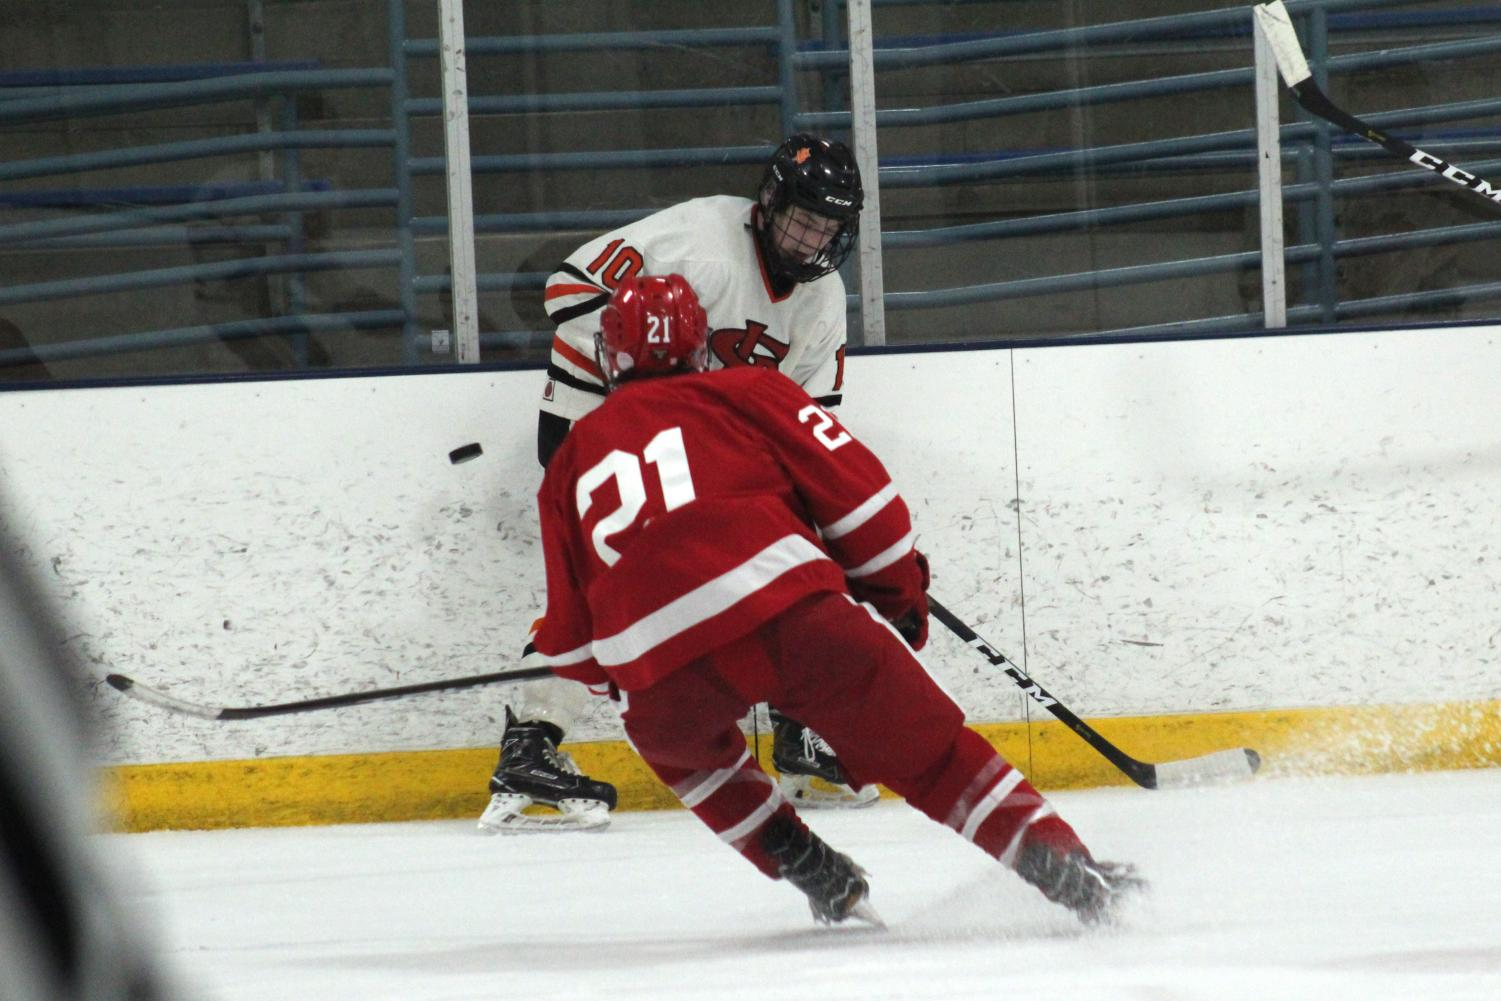 Sophomore Sam Barry attempts to shoot the puck around Benilde's player Blake Mesenburg. The boys' hockey team played Benilde Feb.14 at the Rec center.